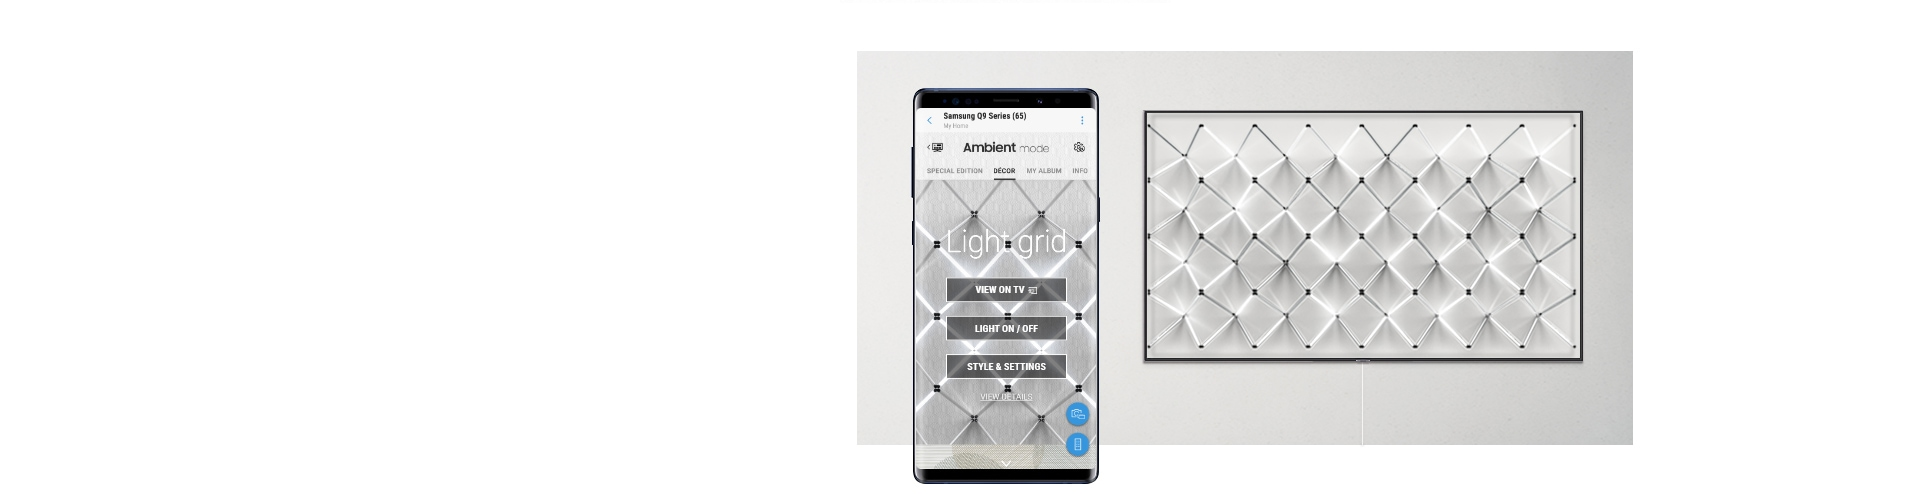 "Image shows 2019 QLED's new Ambient Mode pattern ""Light Grid"" and smart phone to apply the pattern through SmartThings App."